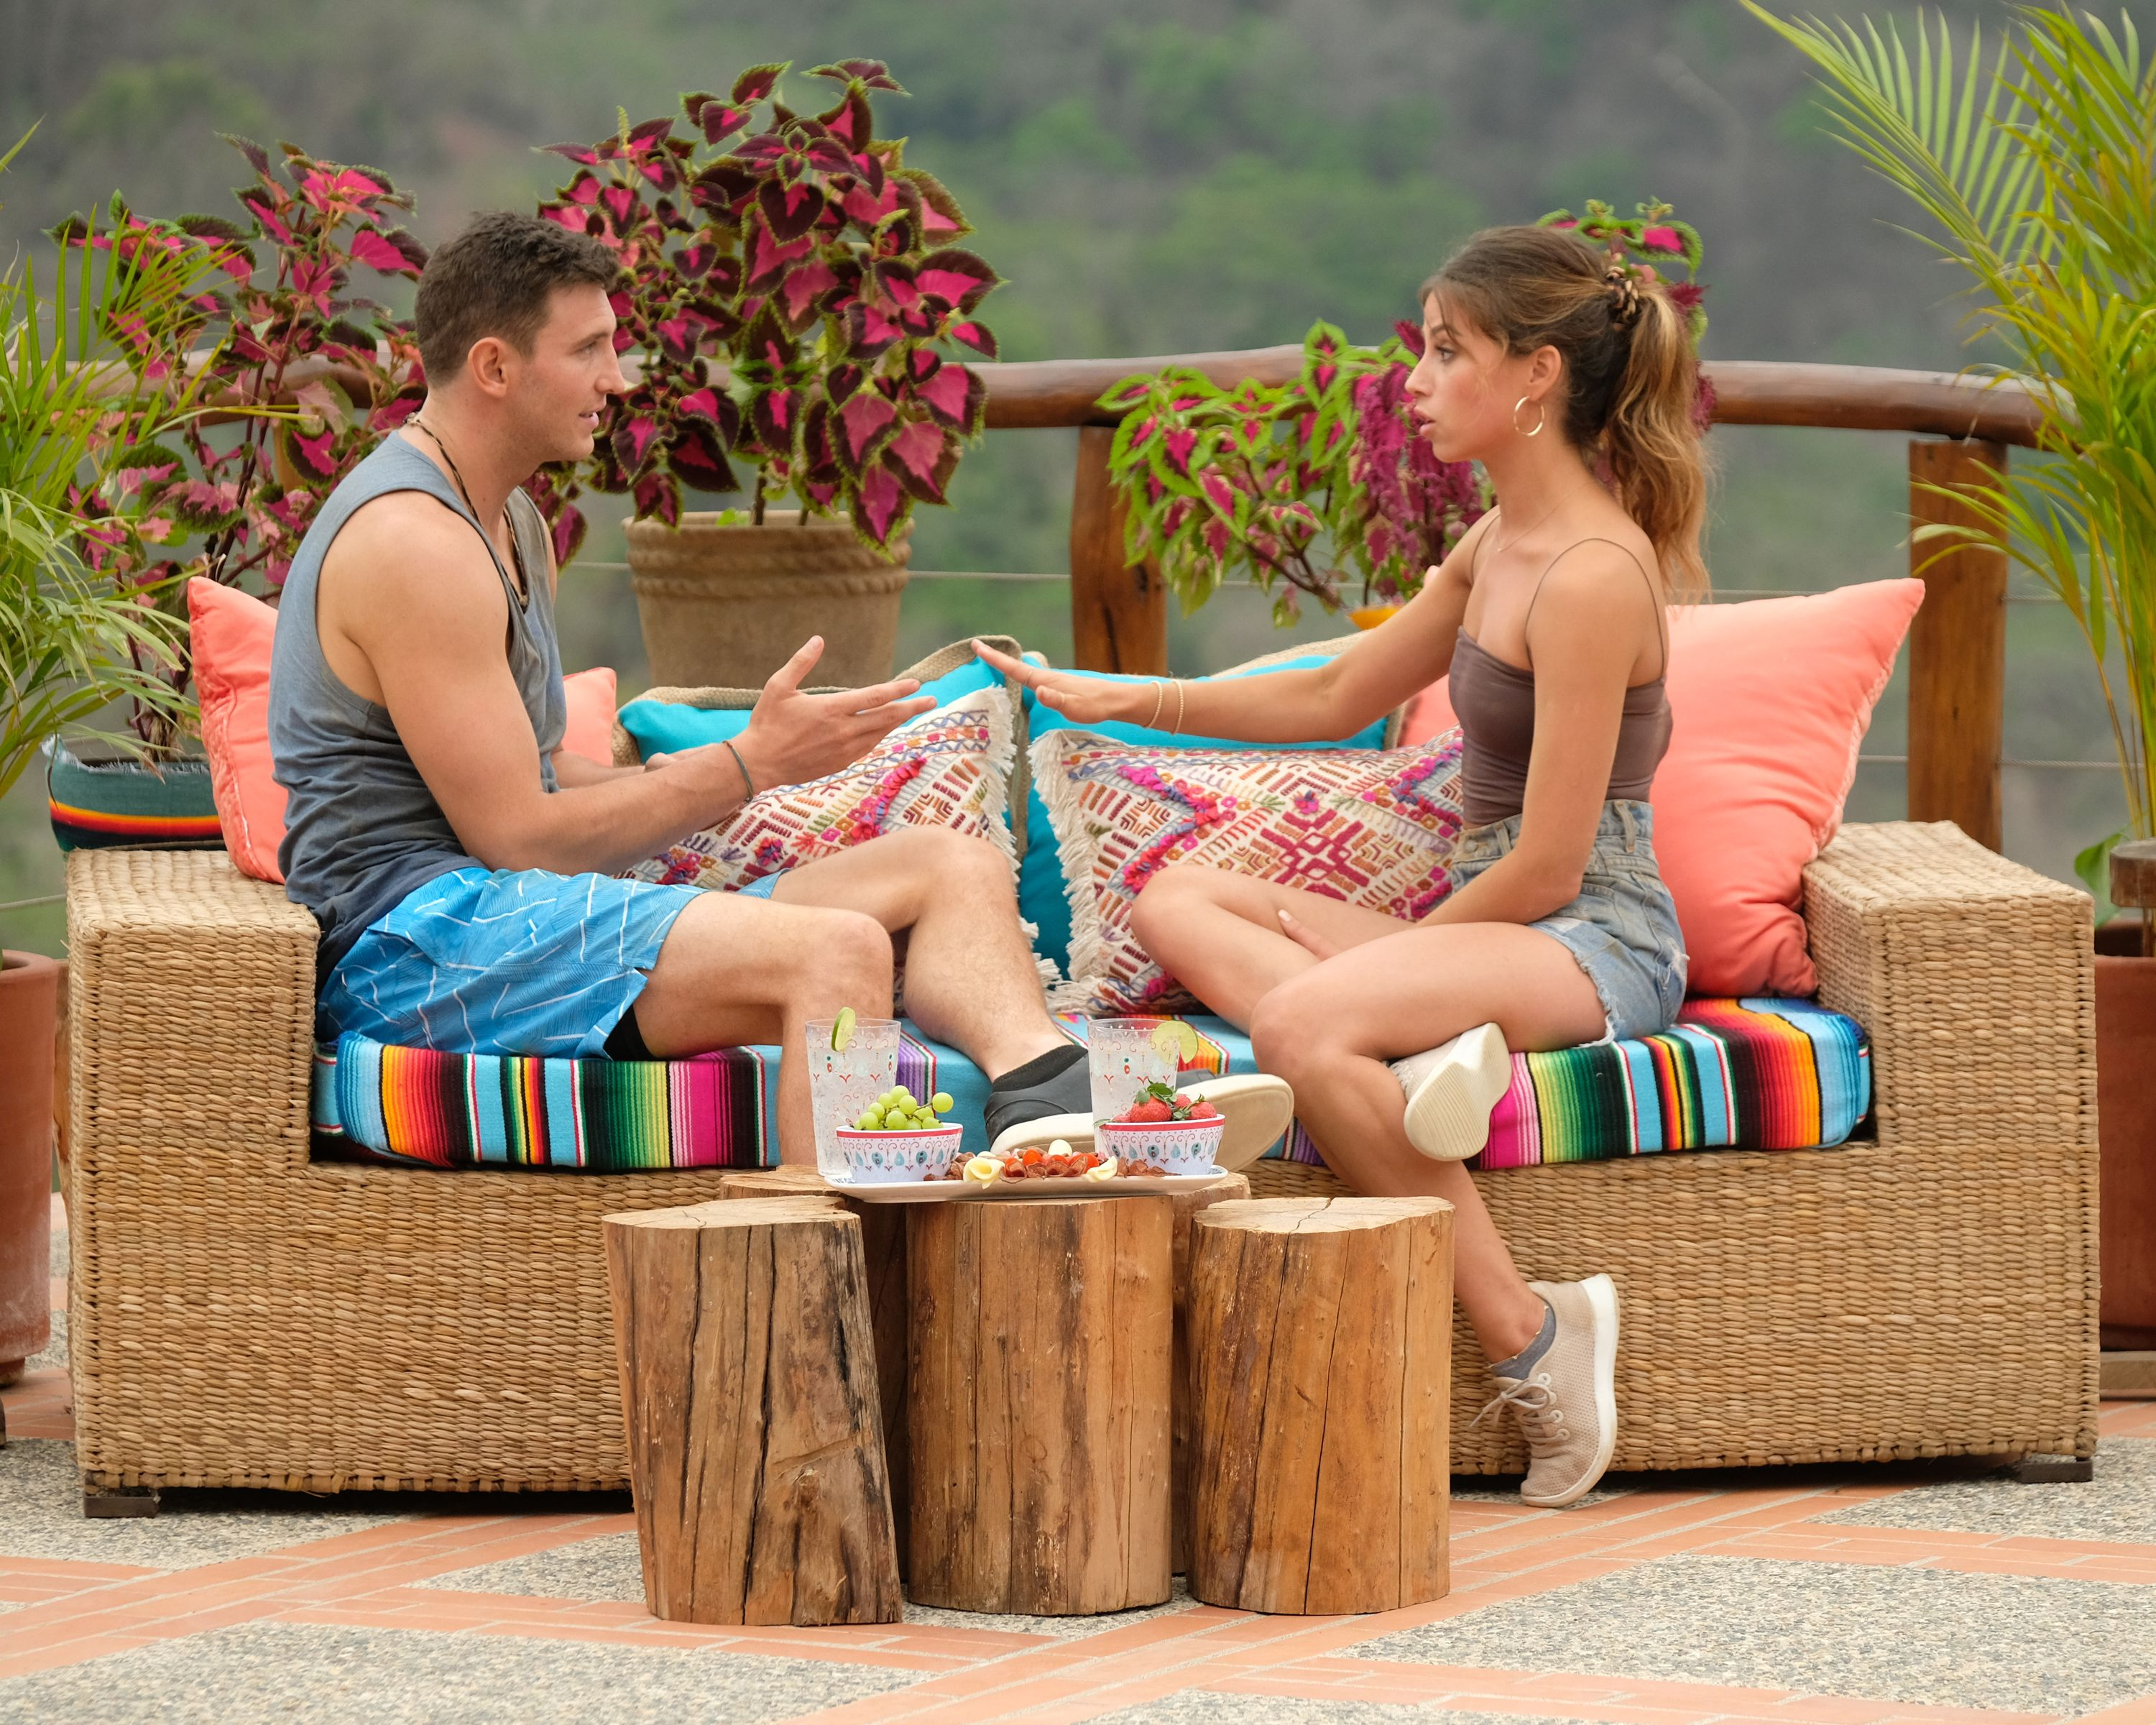 'Bachelor In Paradise' Spoilers From Reality Steve Decode All The Drama In ABC's New Trailer